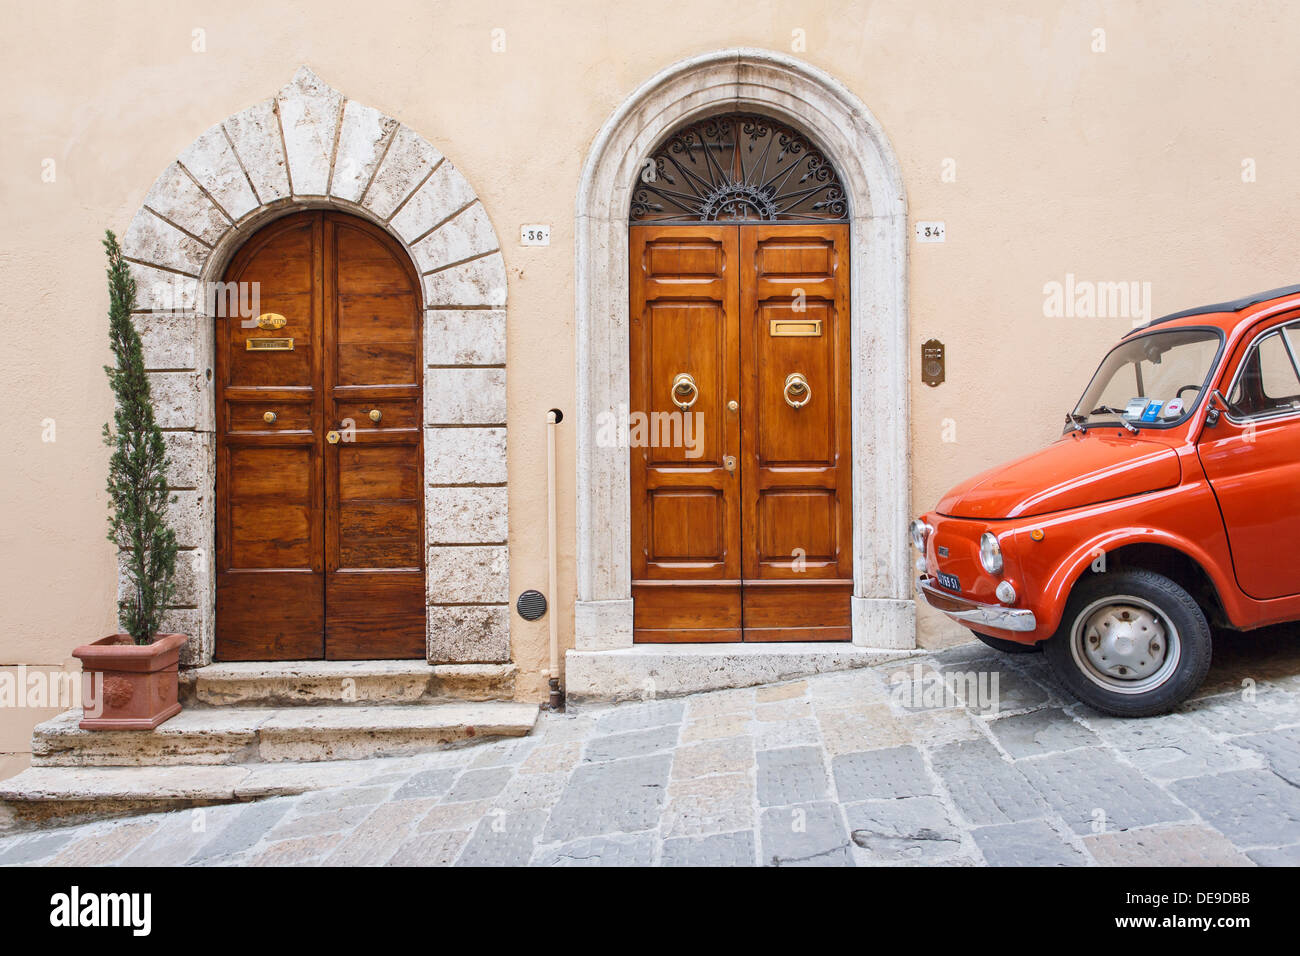 A red Fiat 500 parked next to two Renaissance doors in Montepulciano Tuscany Italy. & A red Fiat 500 parked next to two Renaissance doors in Montepulciano ...